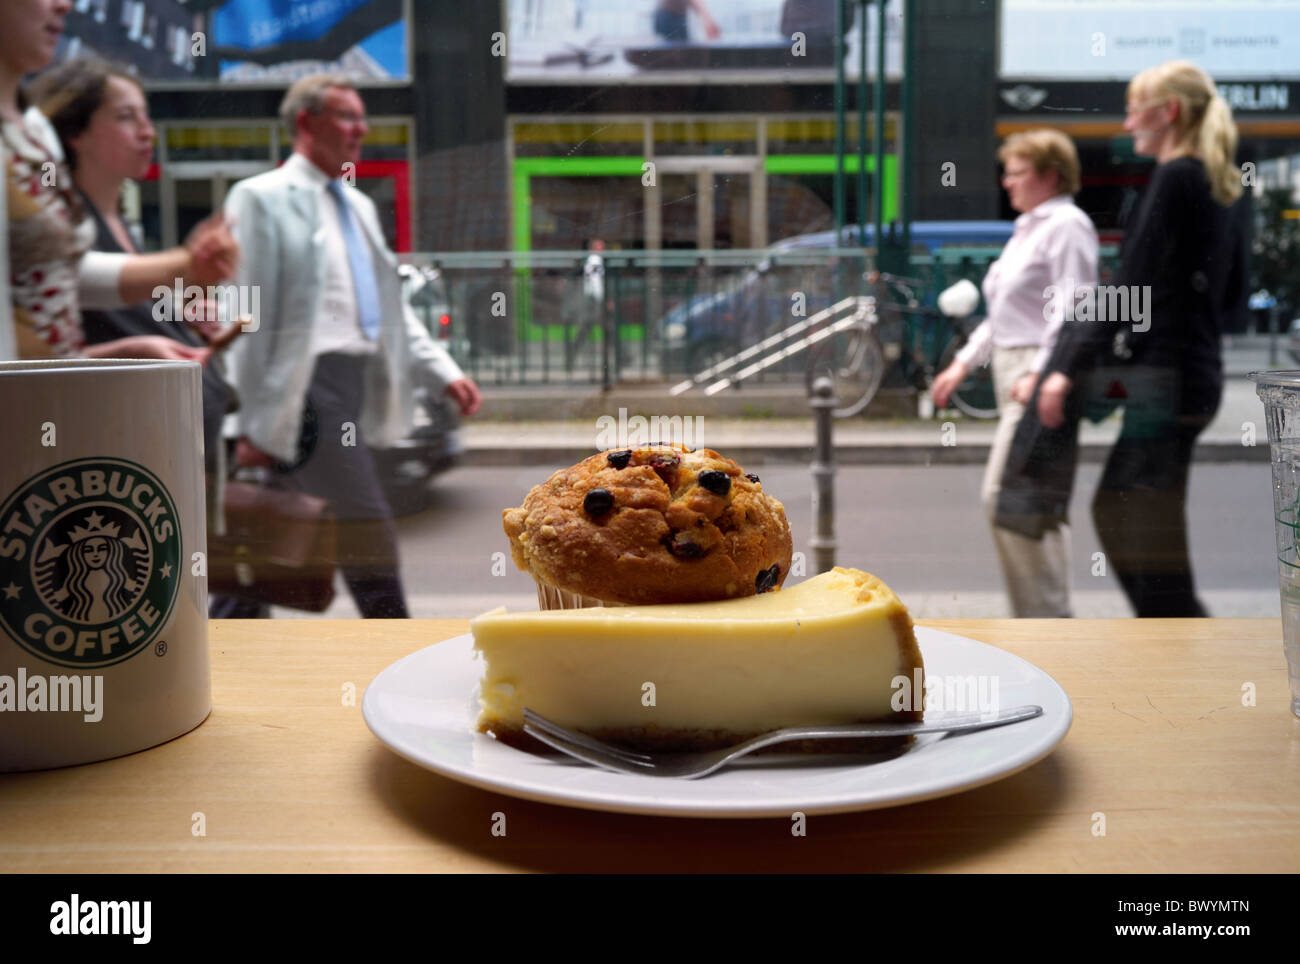 Kaffee Und Kuchen Berlin Berlin Sweets Stockfotos And Berlin Sweets Bilder Alamy